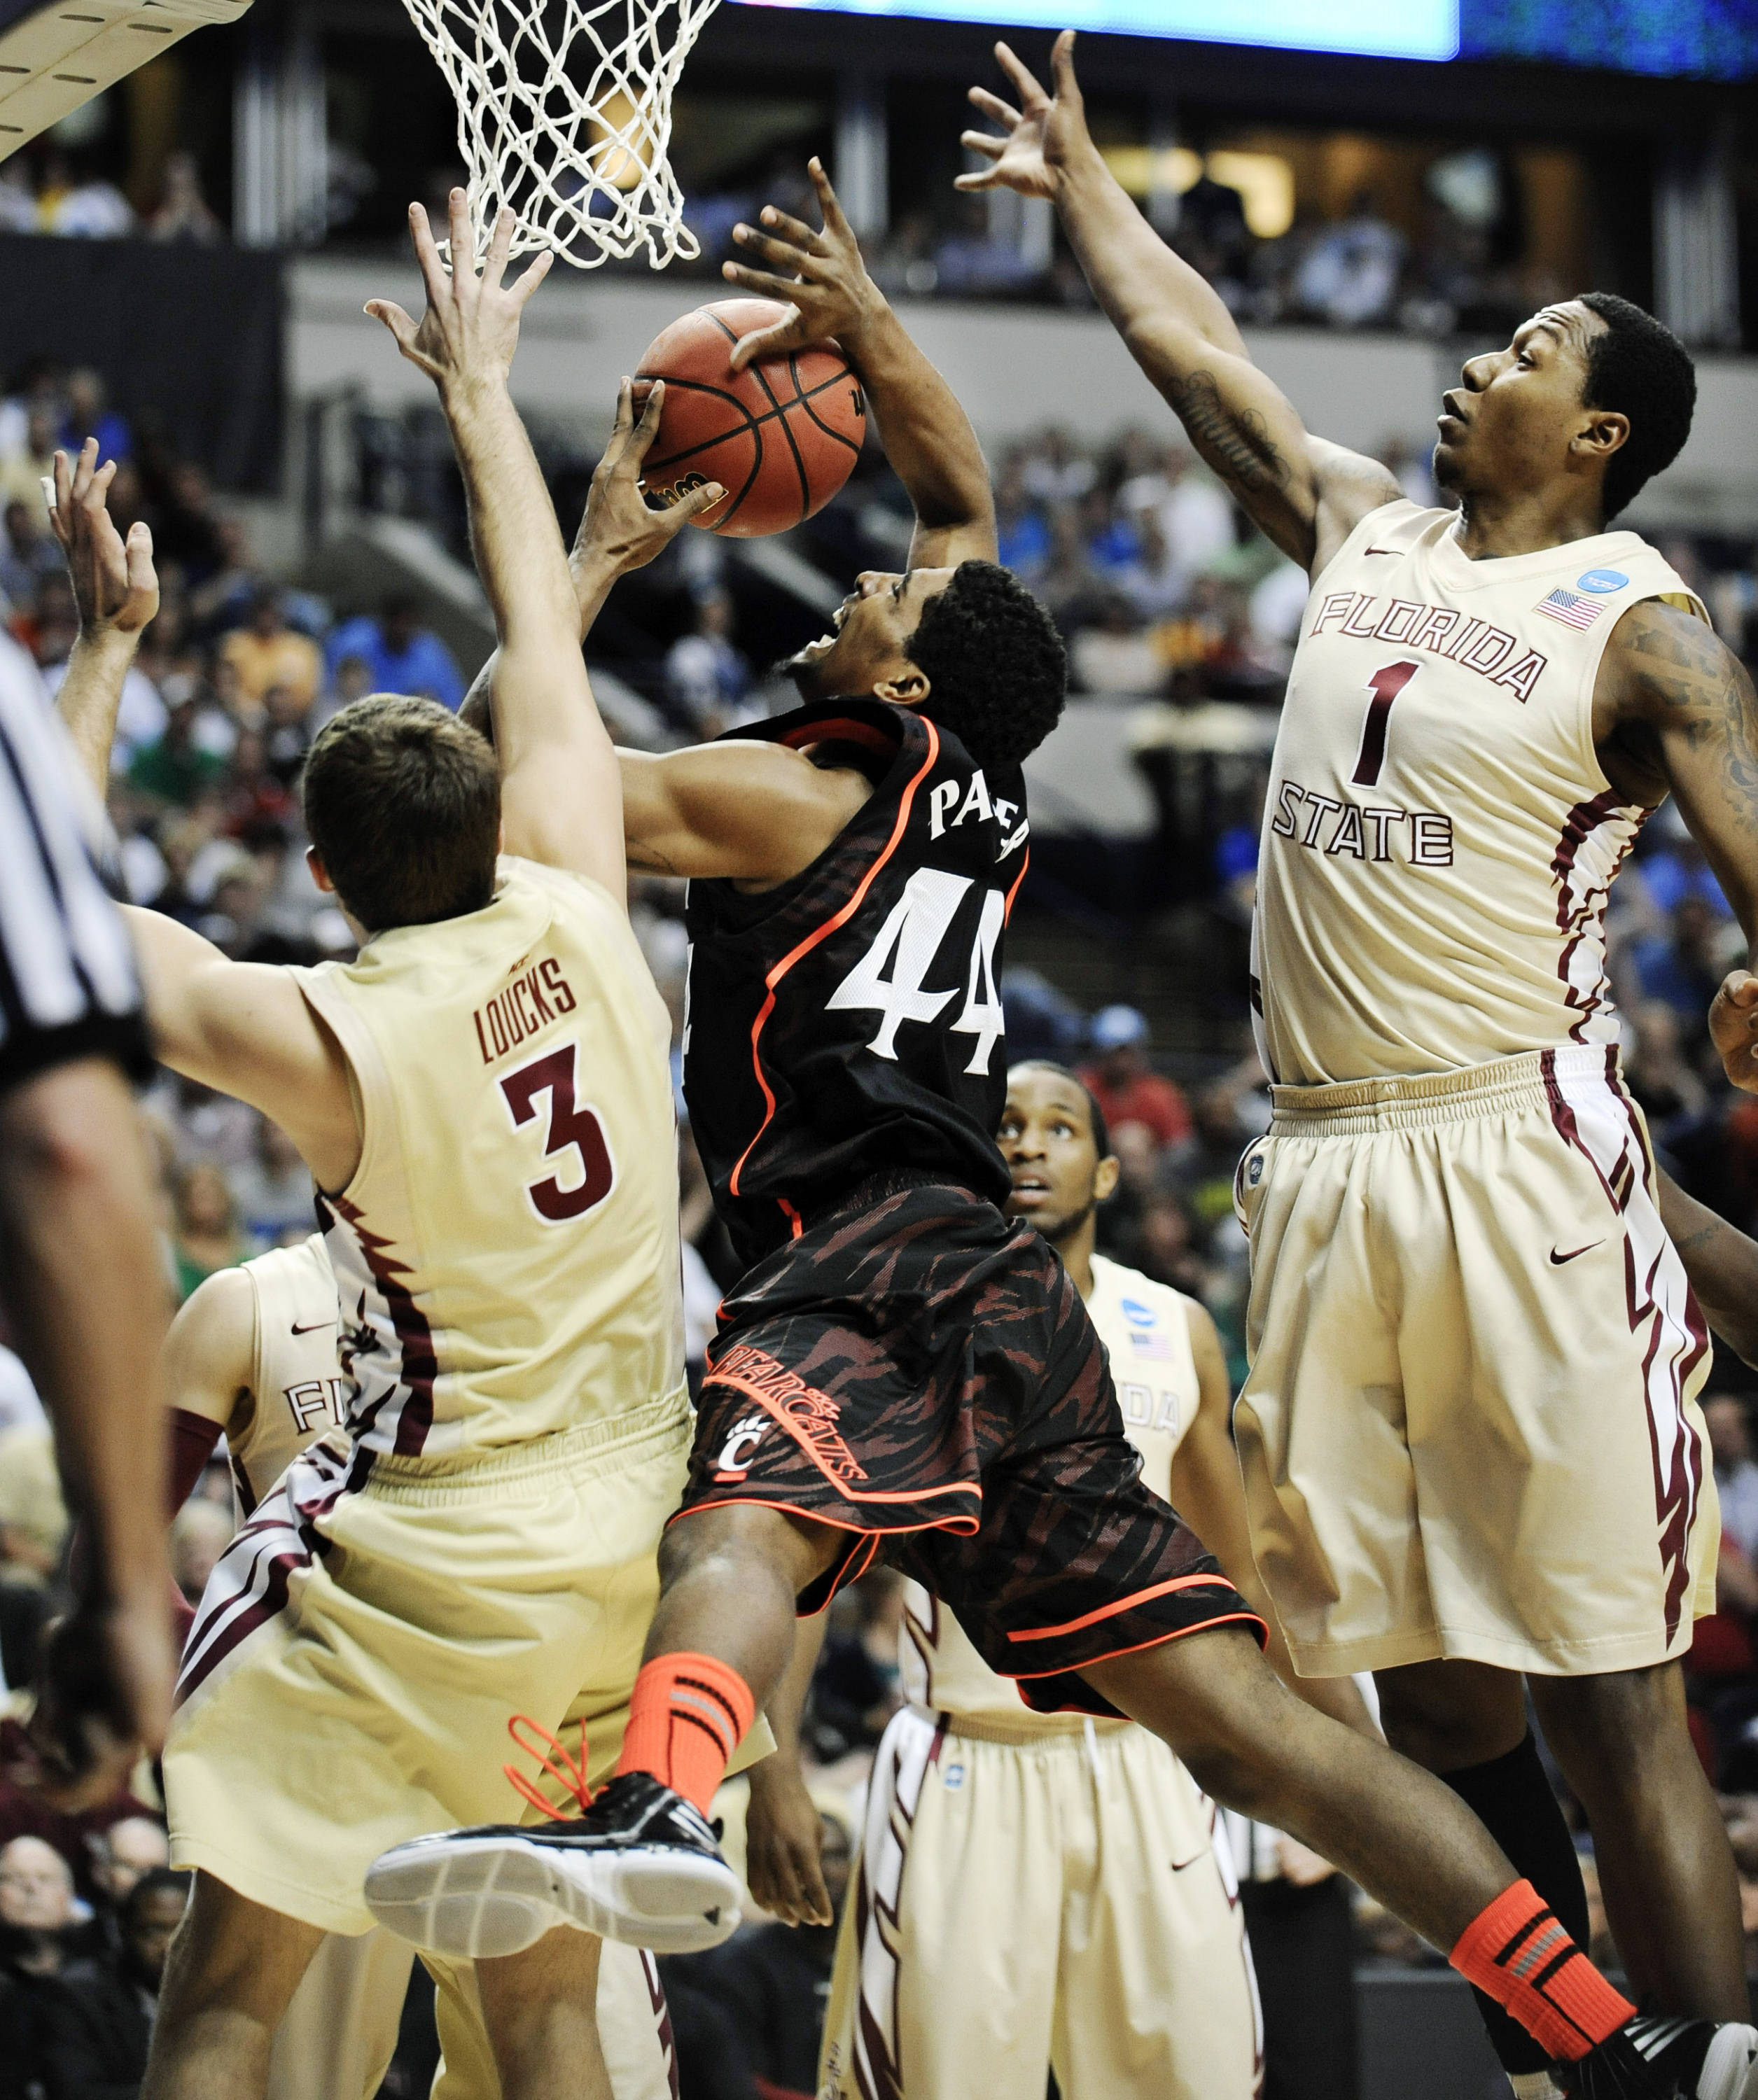 Cincinnati guard Jaquon Parker (44) tries to get a shot away as he is defended by Florida State's Luke Loucks (3) and Xavier Gibson (1). (AP Photo/Donn Jones)